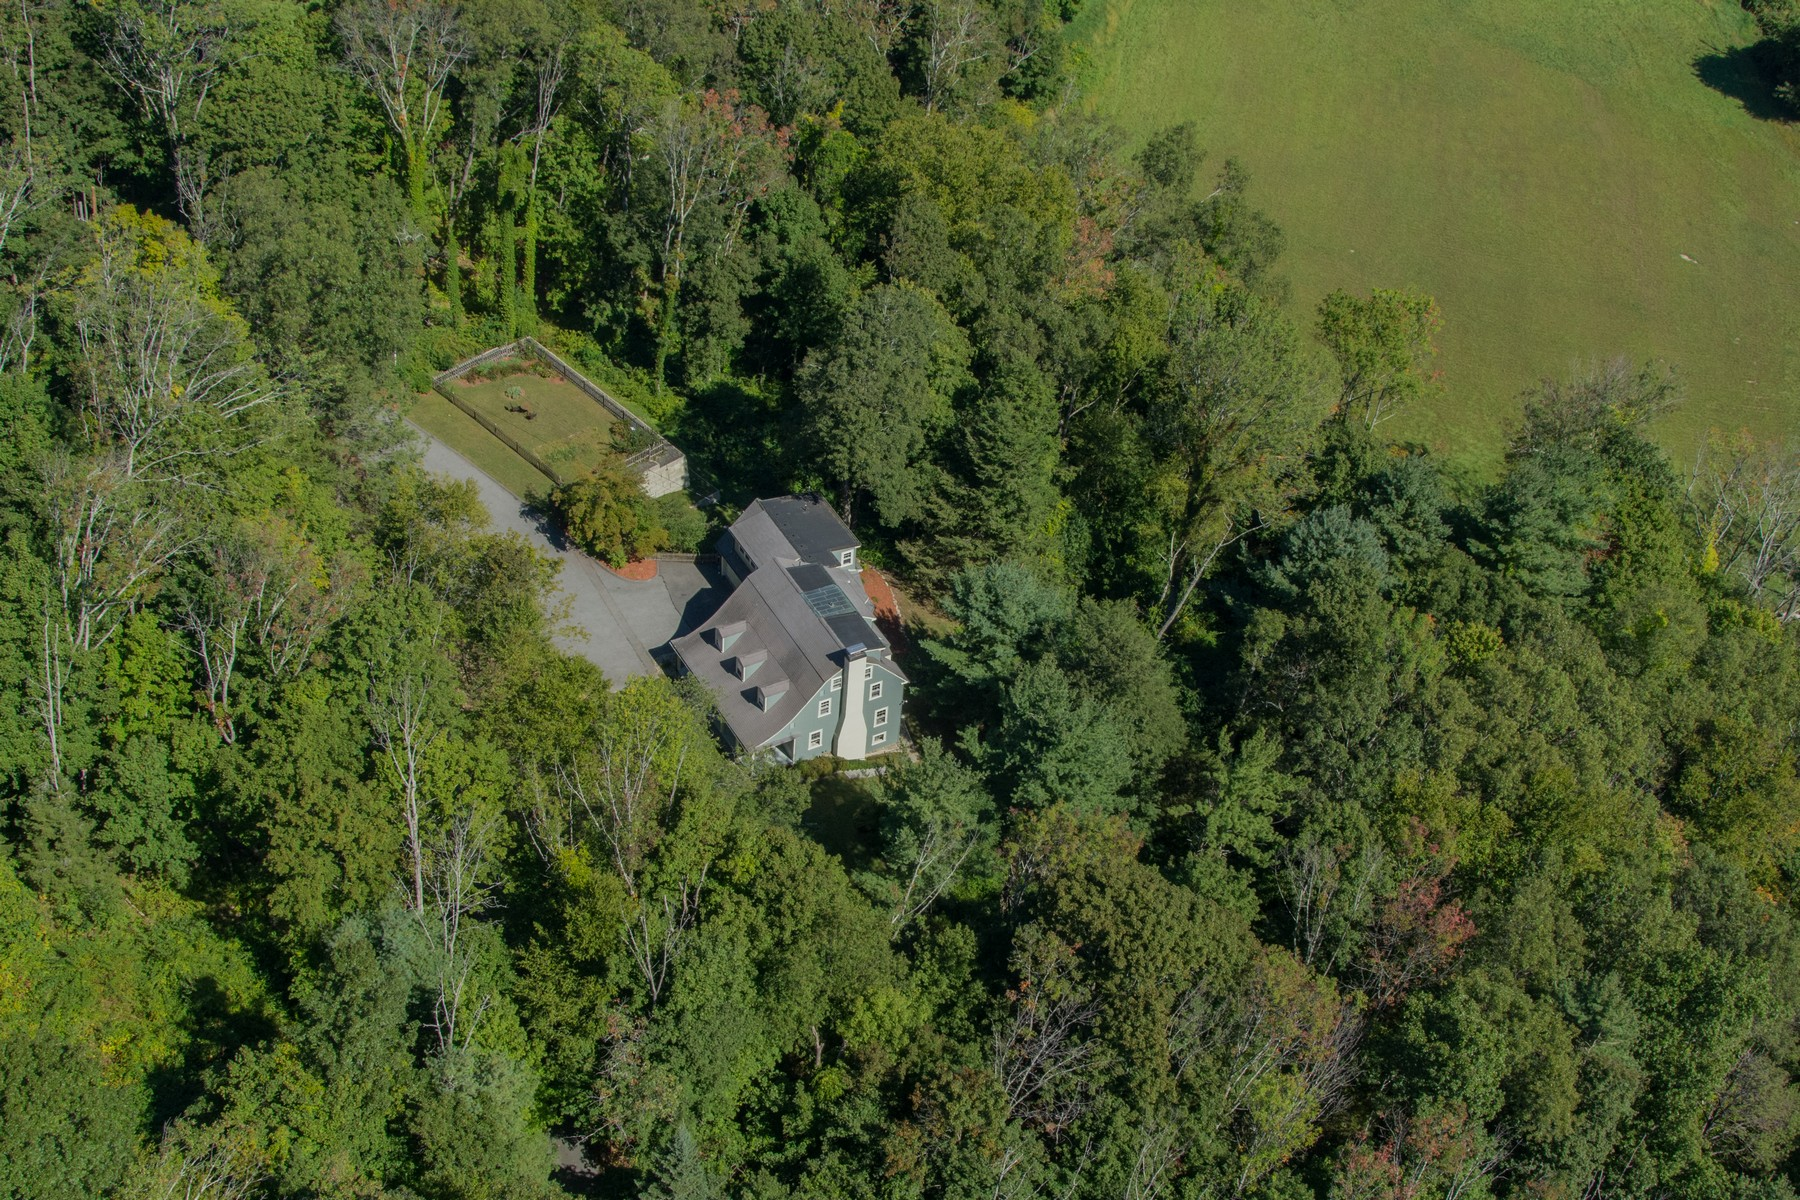 Single Family Home for Sale at Elegant & Country Charm 14 Hilliard Road Lincoln, Massachusetts 01773 United States